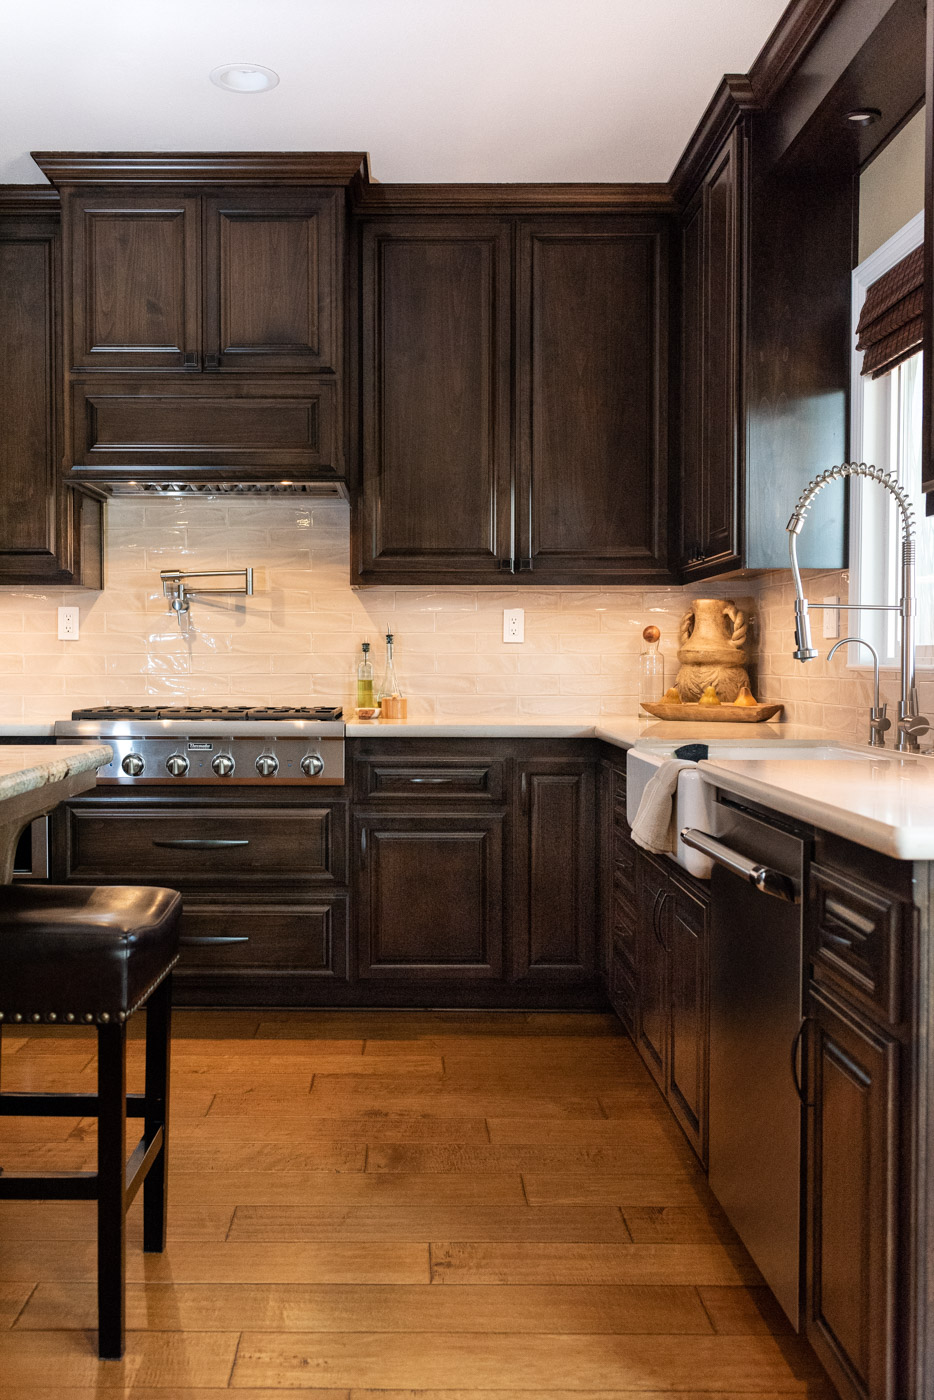 Traditional Mediterranean kitchen with dark wood stain cabinets and custom range hood